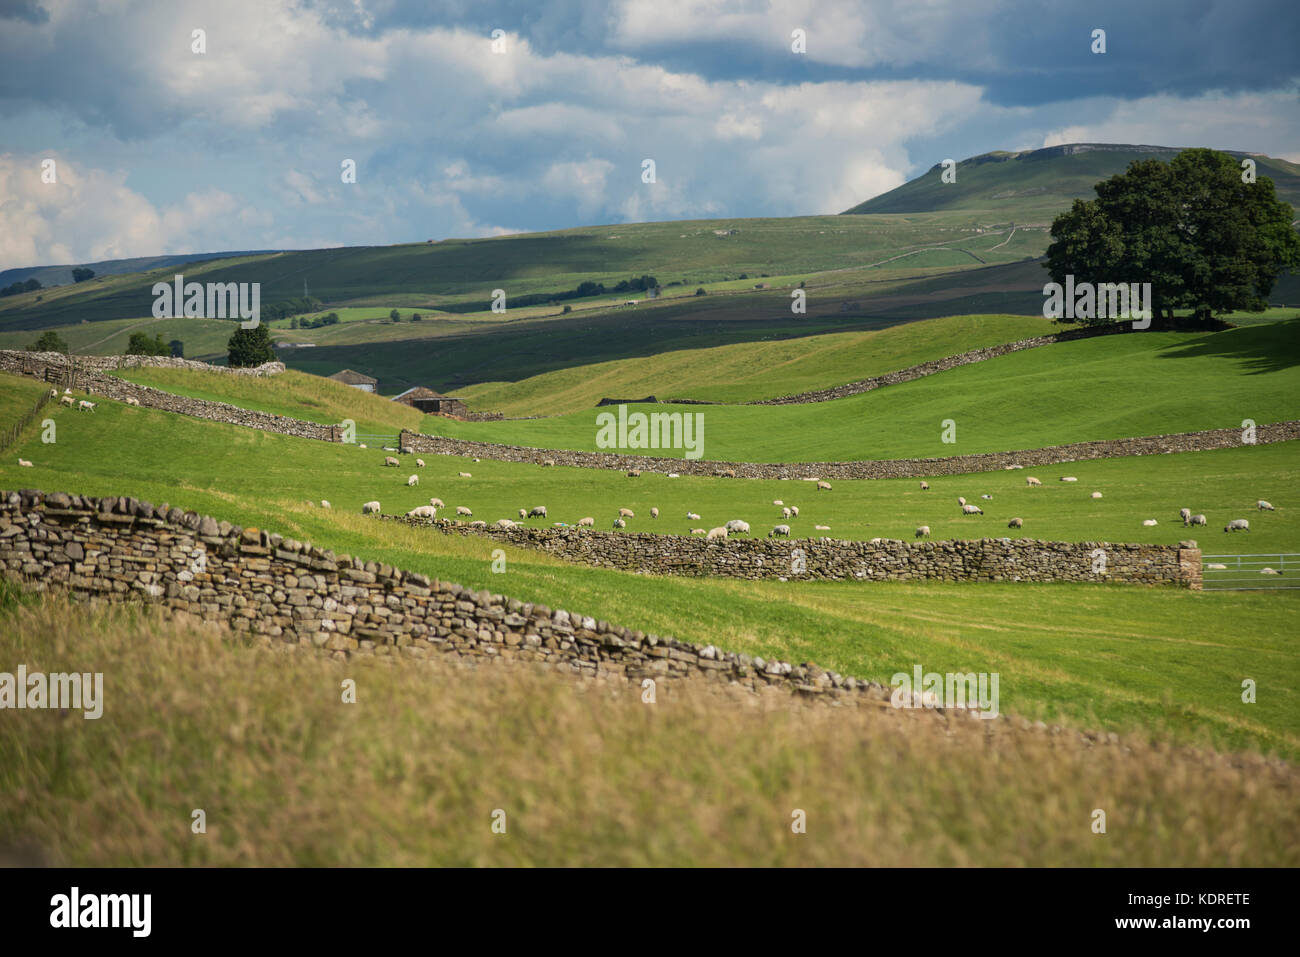 Green fields in Wensleydale in the Yorkshire Dales, England - Stock Image